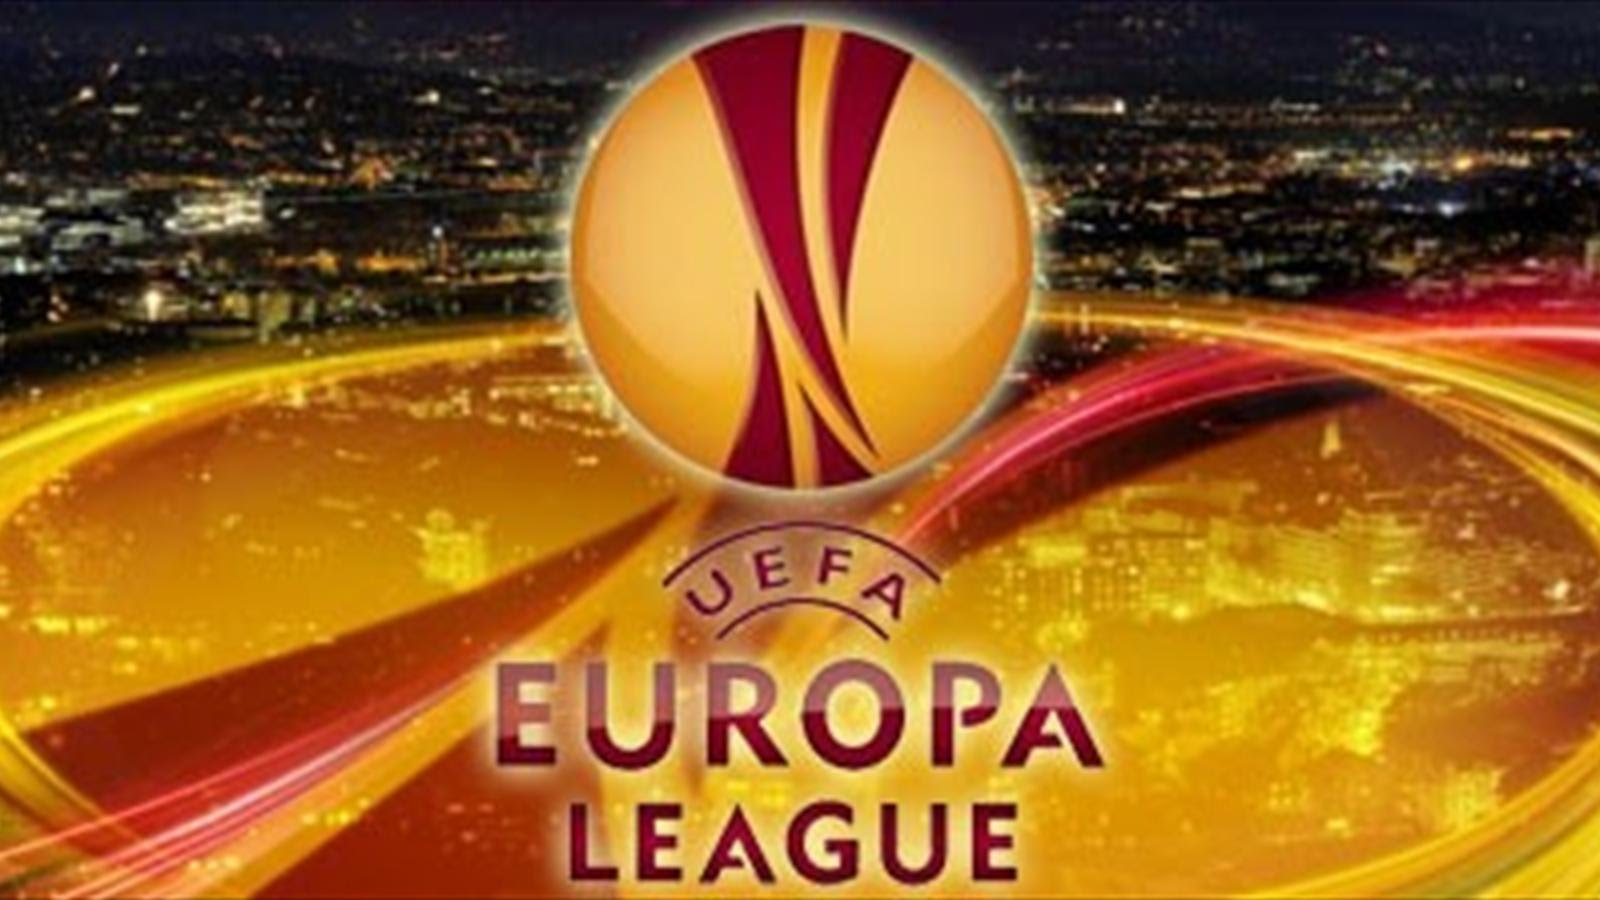 prediksi-pertandingan-monaco-vs-qarabag-23-oktober-2015-europa-league